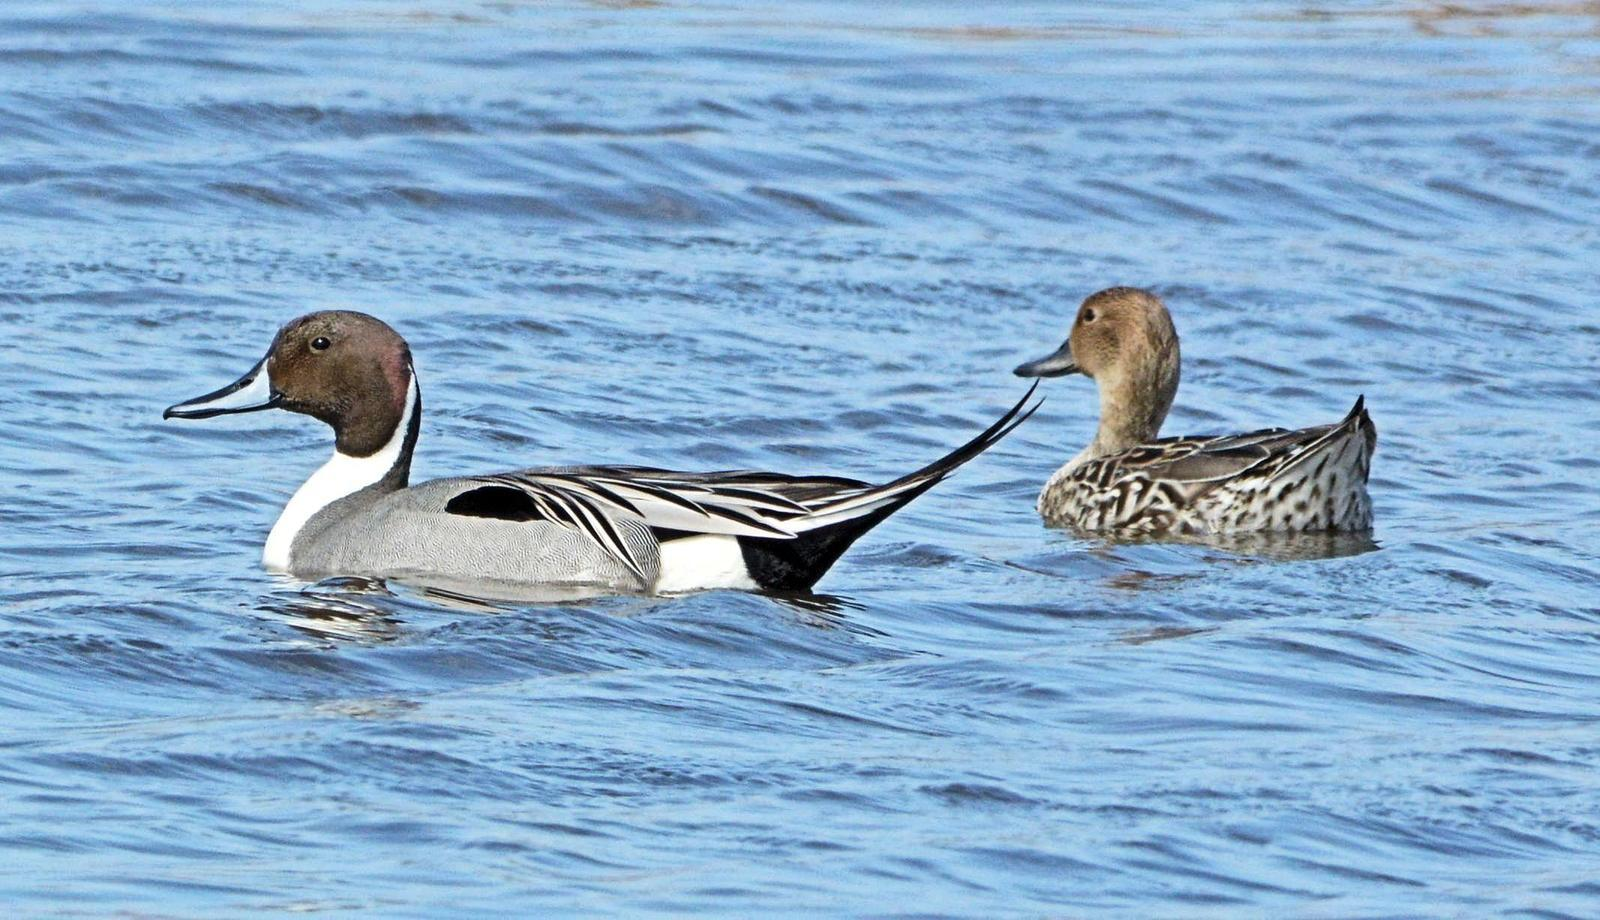 Northern Pintail Photo by Jeannette Piecznski